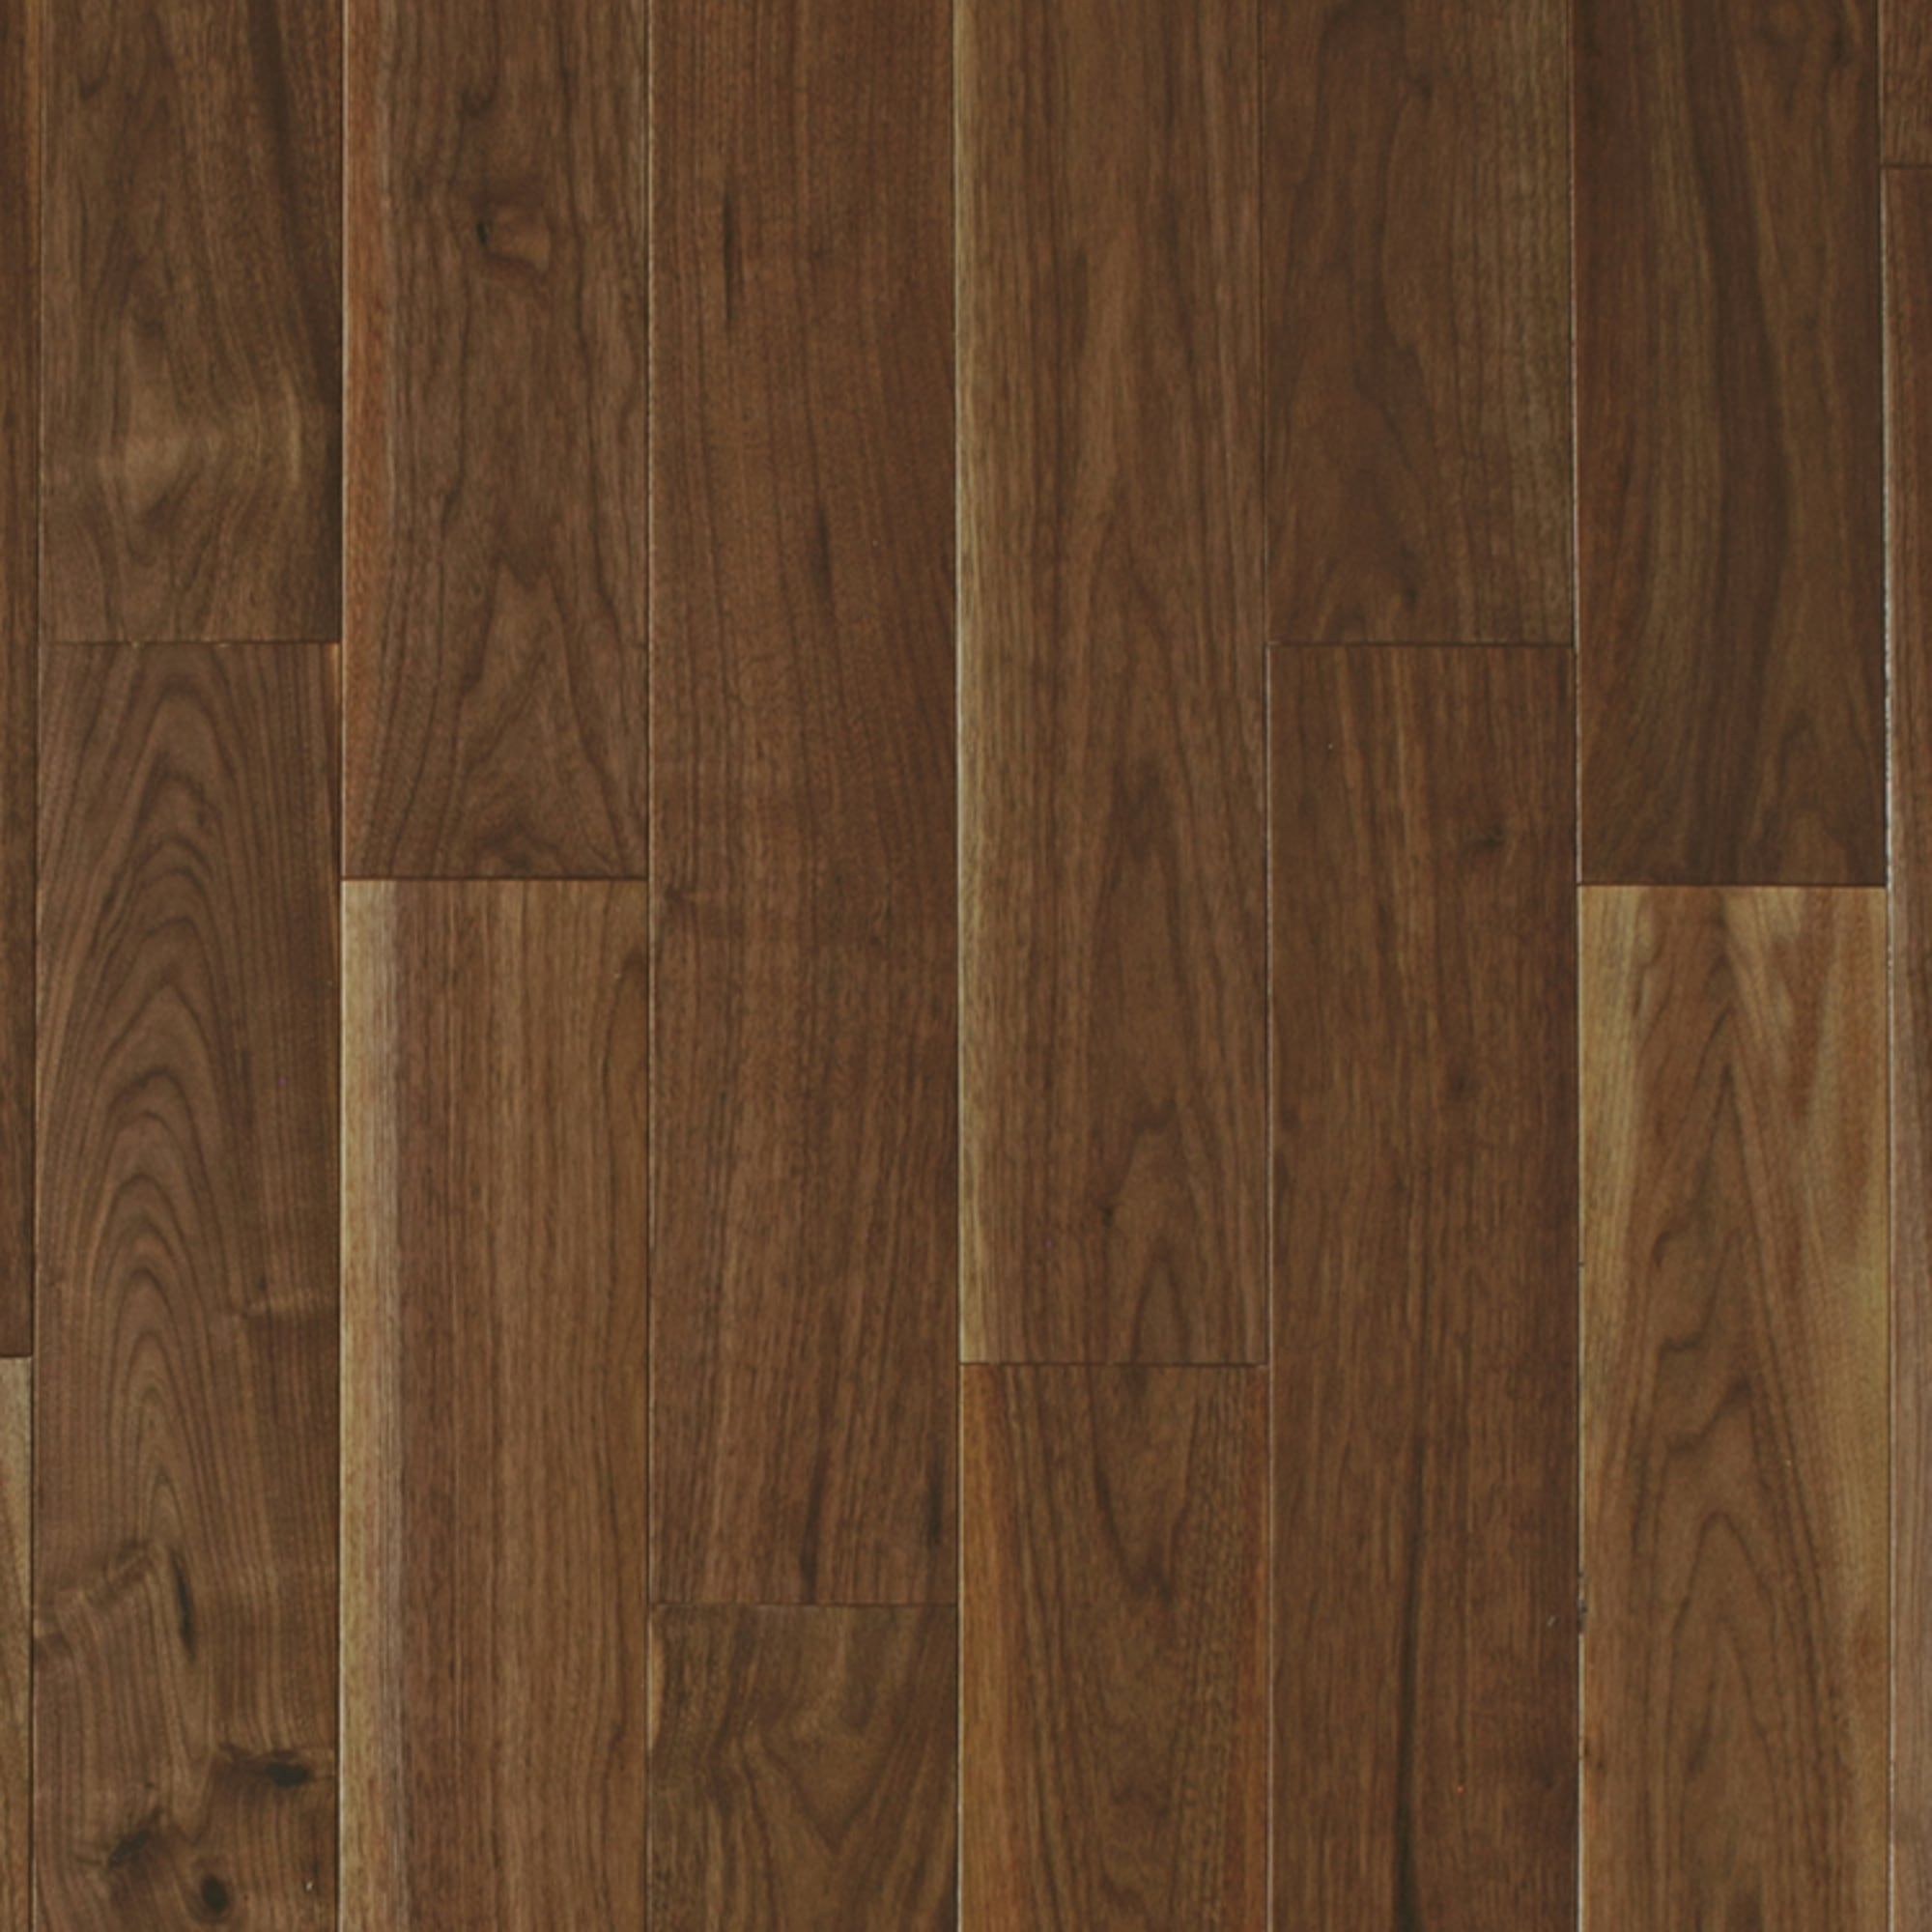 Wood flooring multi layer 18x125mm lacquered engineered for Walnut flooring